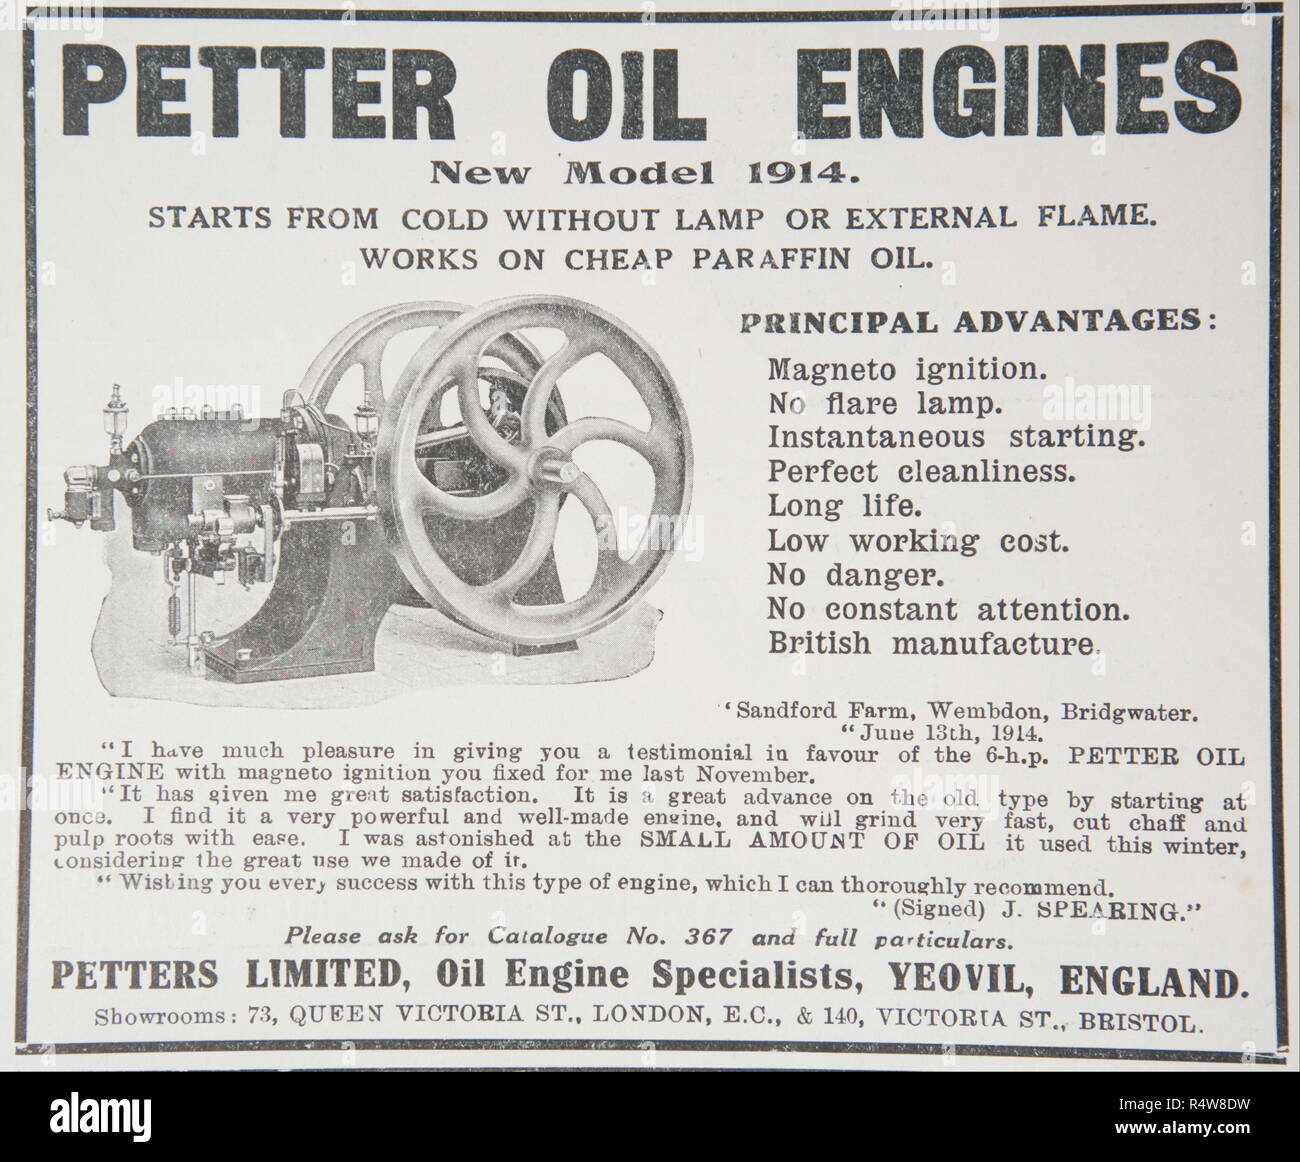 An old advert for Petter Oil Engines. From a British magazine from the 1914-1919 period. England UK GB - Stock Image